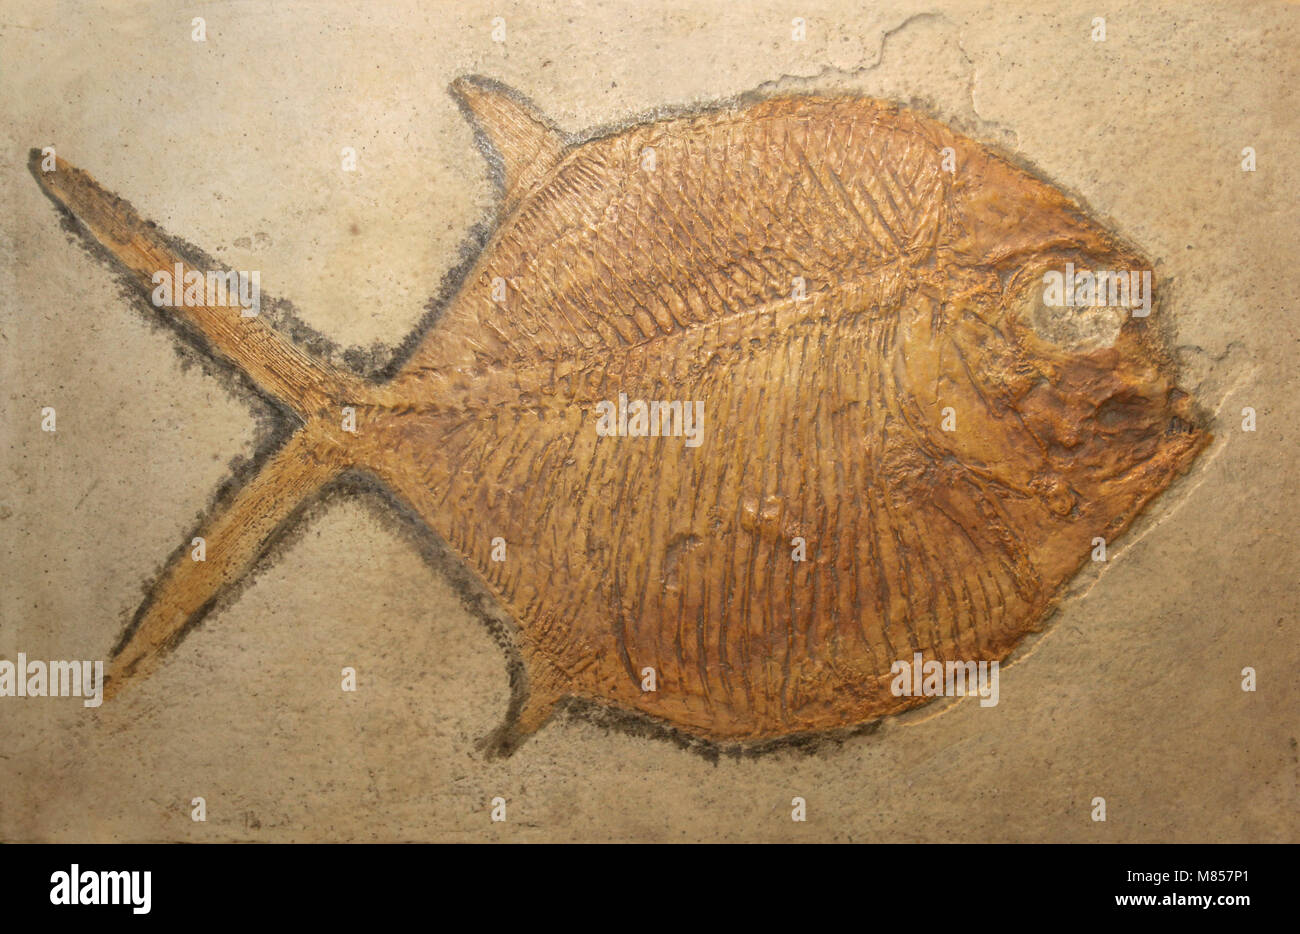 Fossil Fish Gyrodus frontatus - Lithographic Limestone, Upper Jurassic, Eichstadt, Bavaria - Stock Image